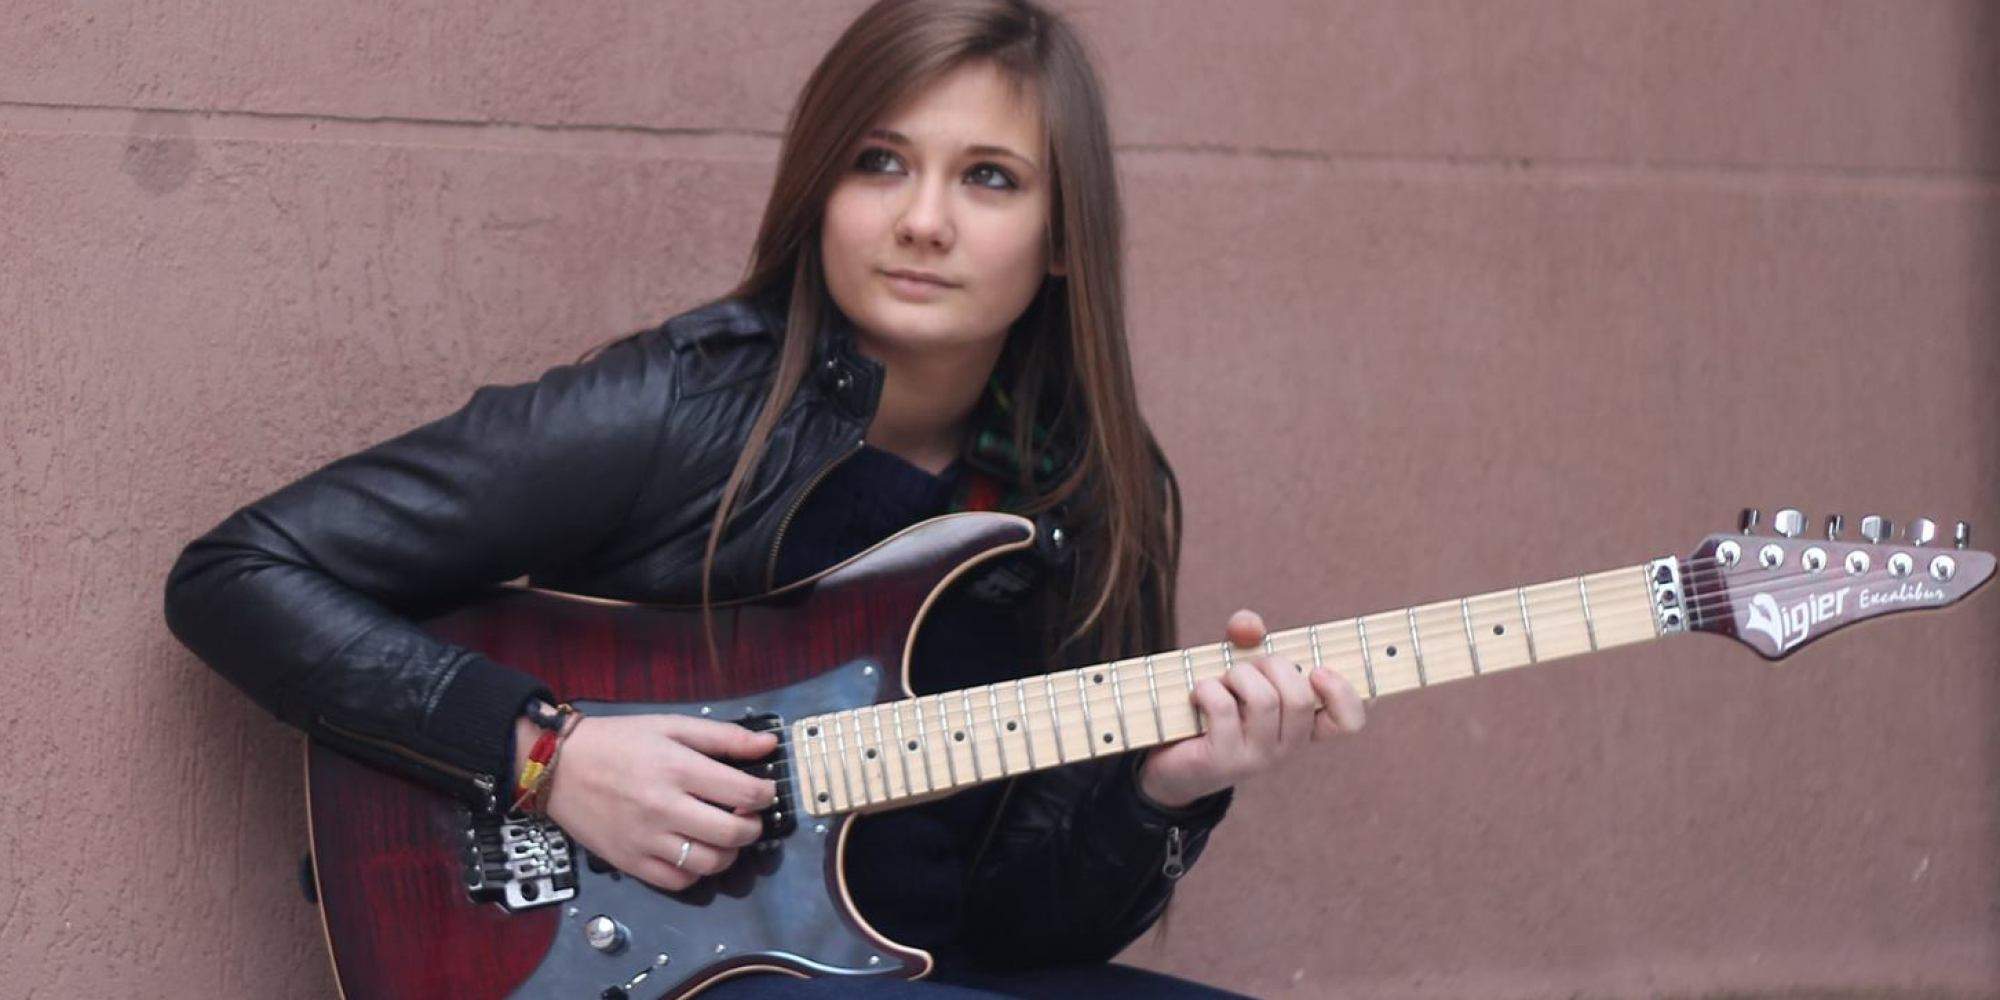 This 16 Year Old Girl Shows The World How To Shred